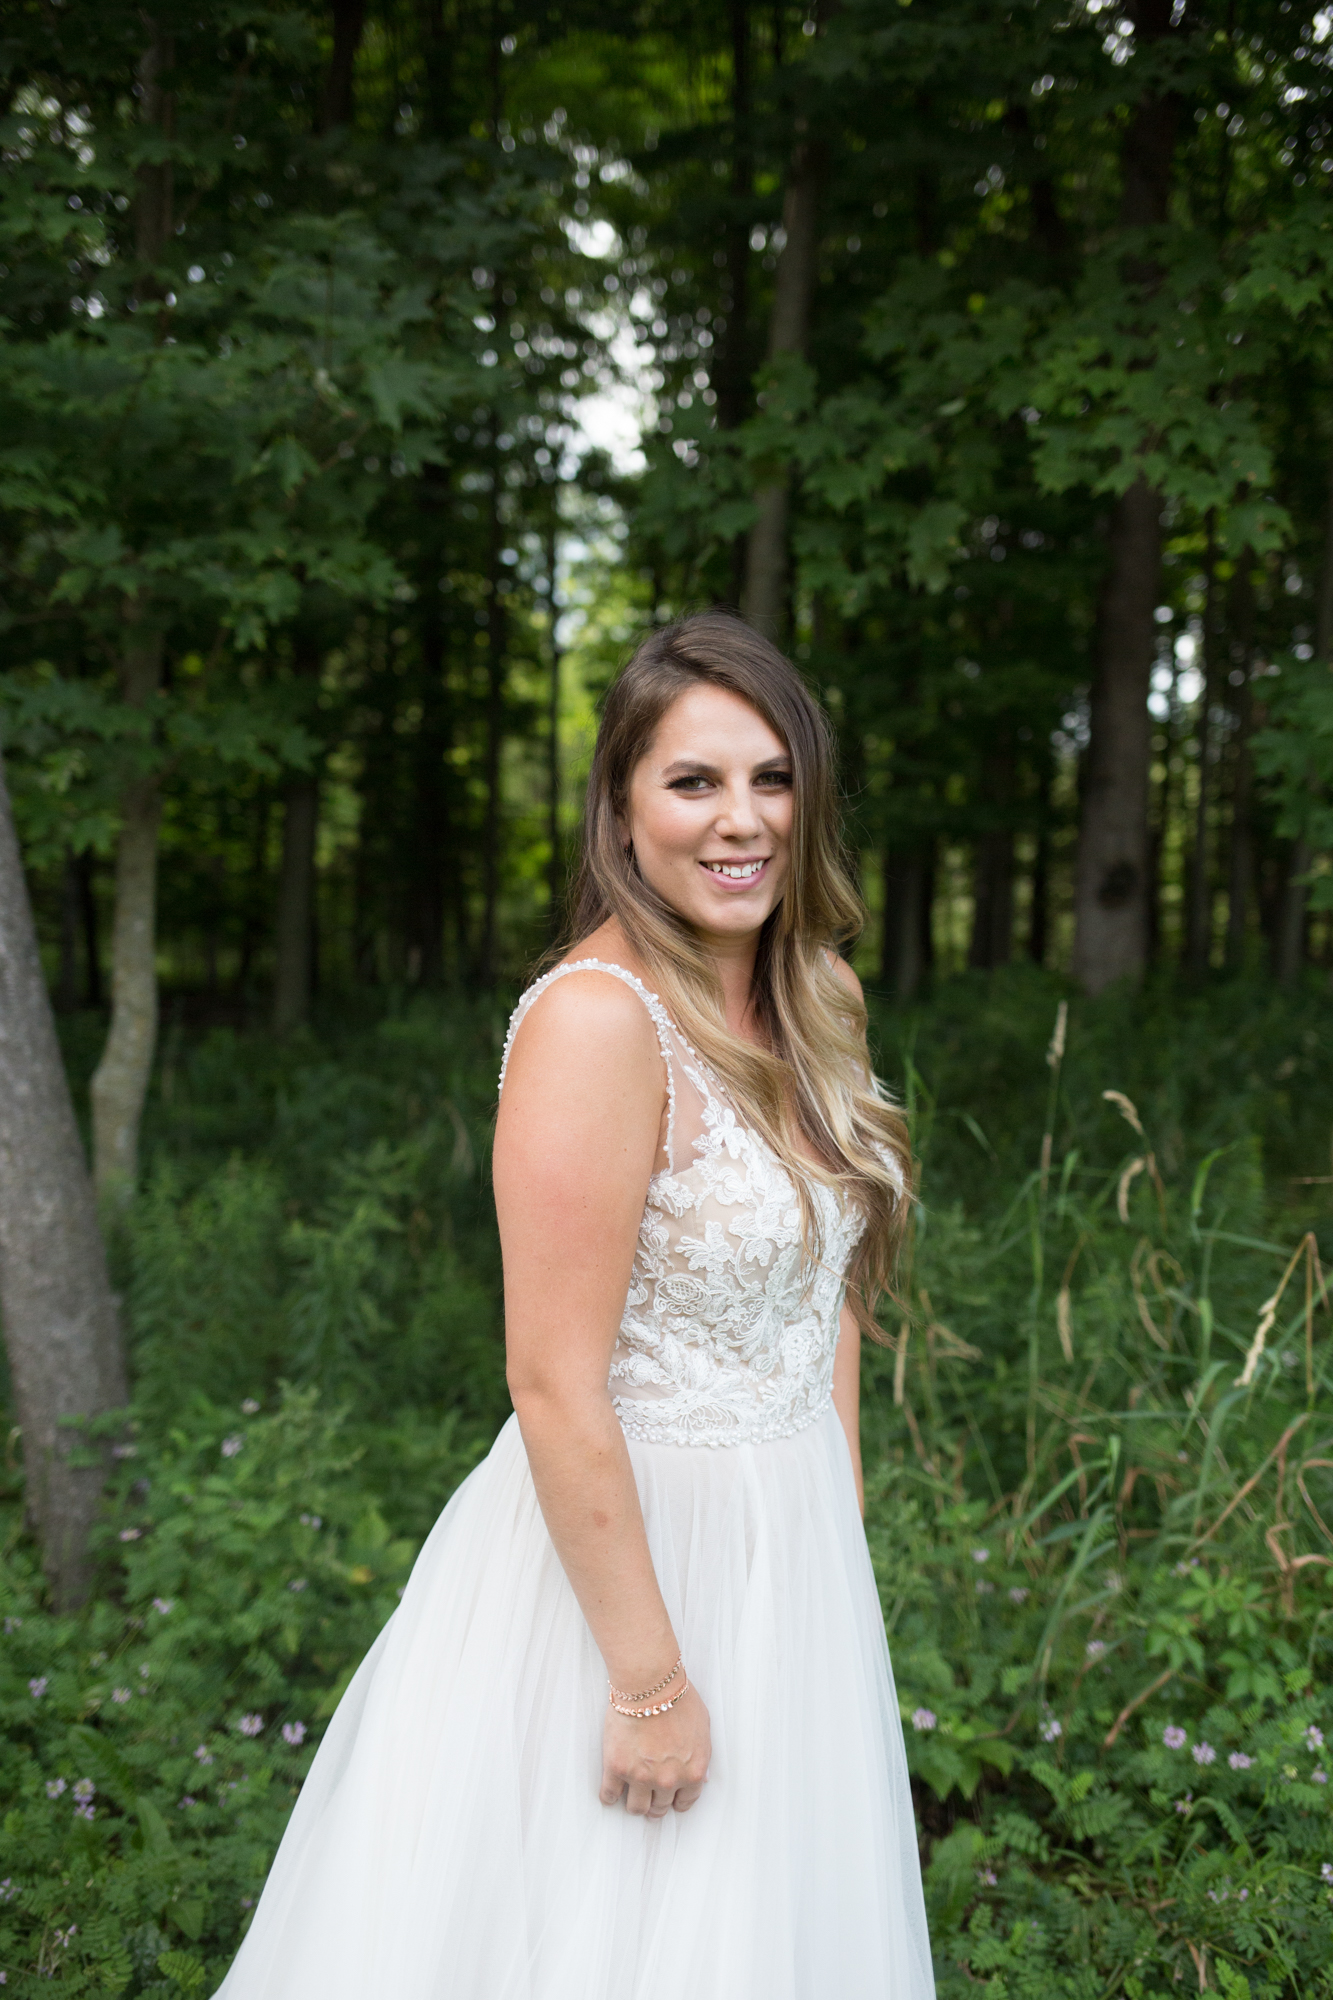 Woodfire Lodge Brillion Wedding Whit Meza Photography_15.jpg